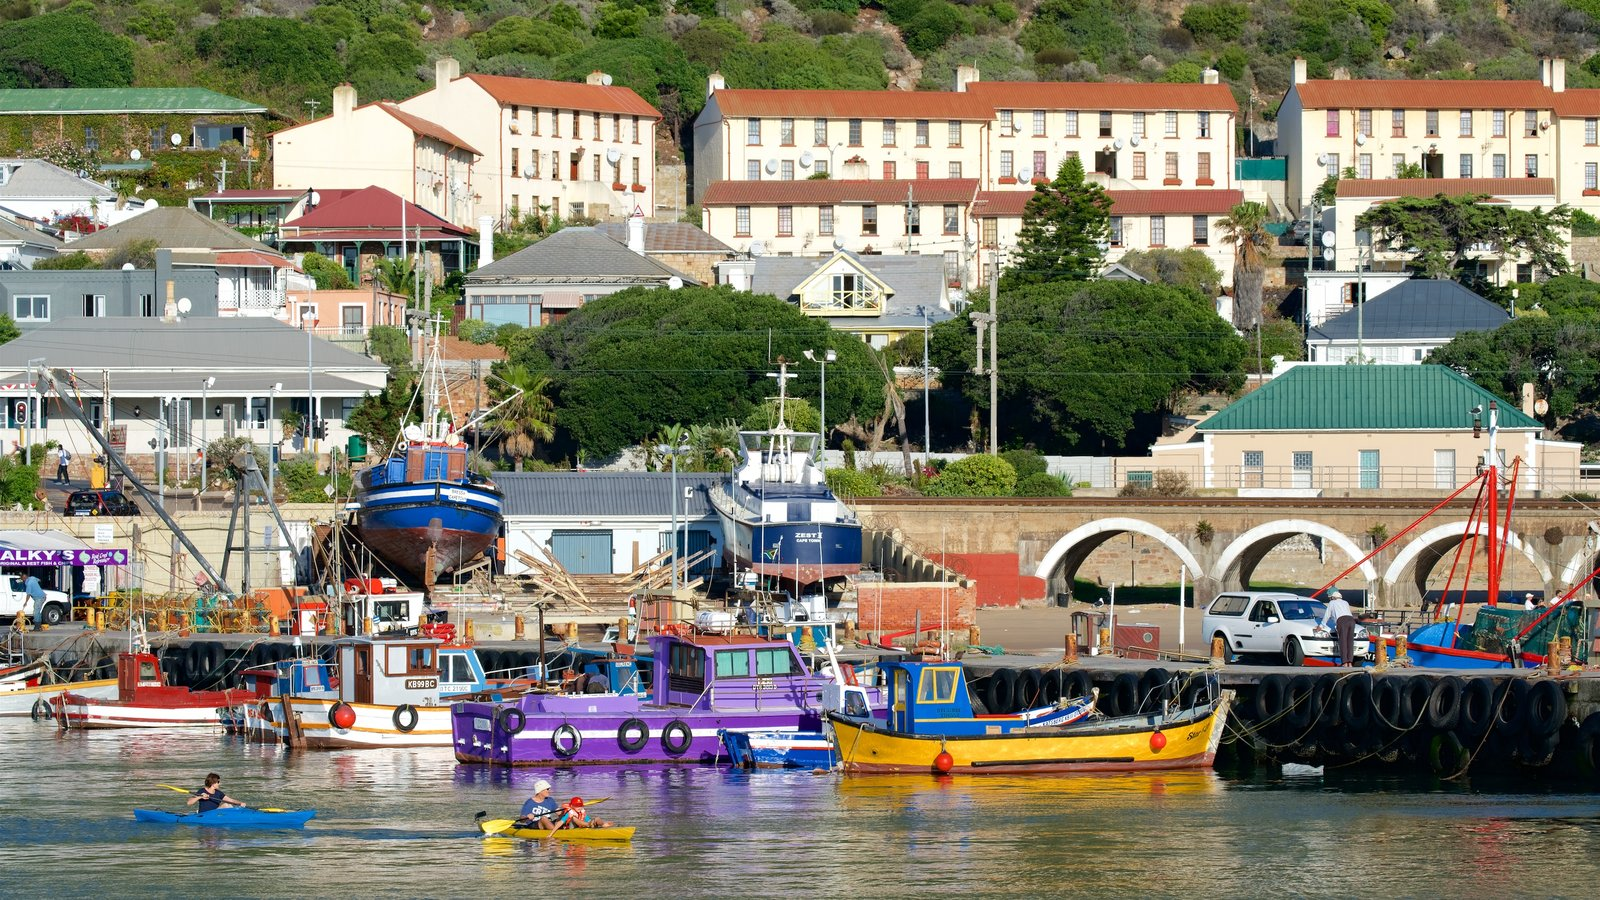 Kalk Bay featuring kayaking or canoeing, boating and a bay or harbor